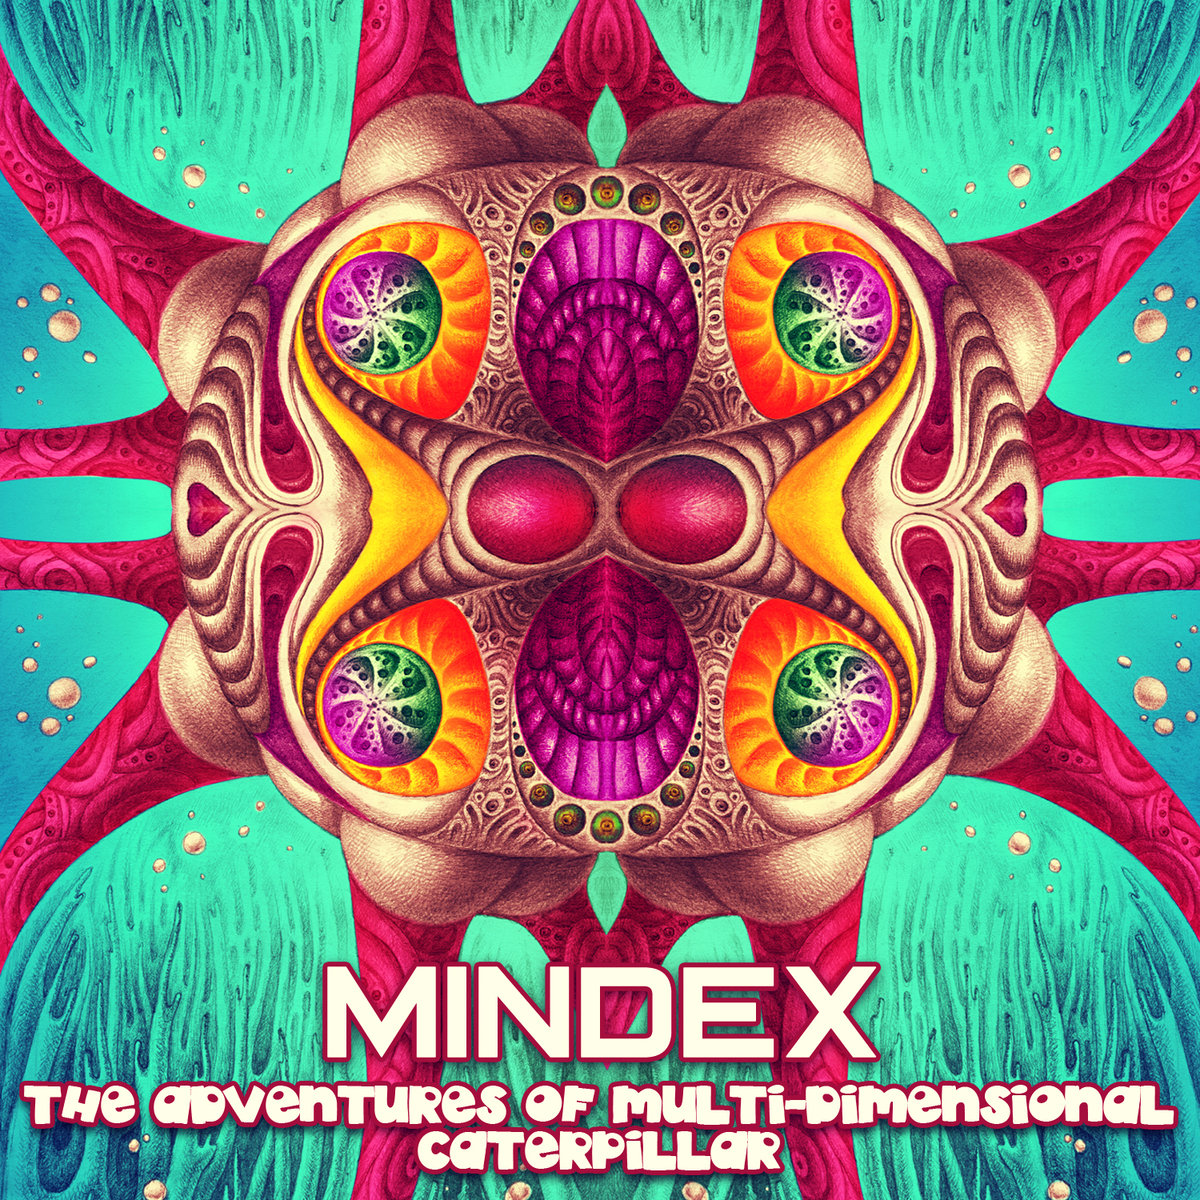 Mindex - Sambuca and Milk @ 'The Adventures of Multi-Dimensional Caterpillar' album (drum & bass, electronic)